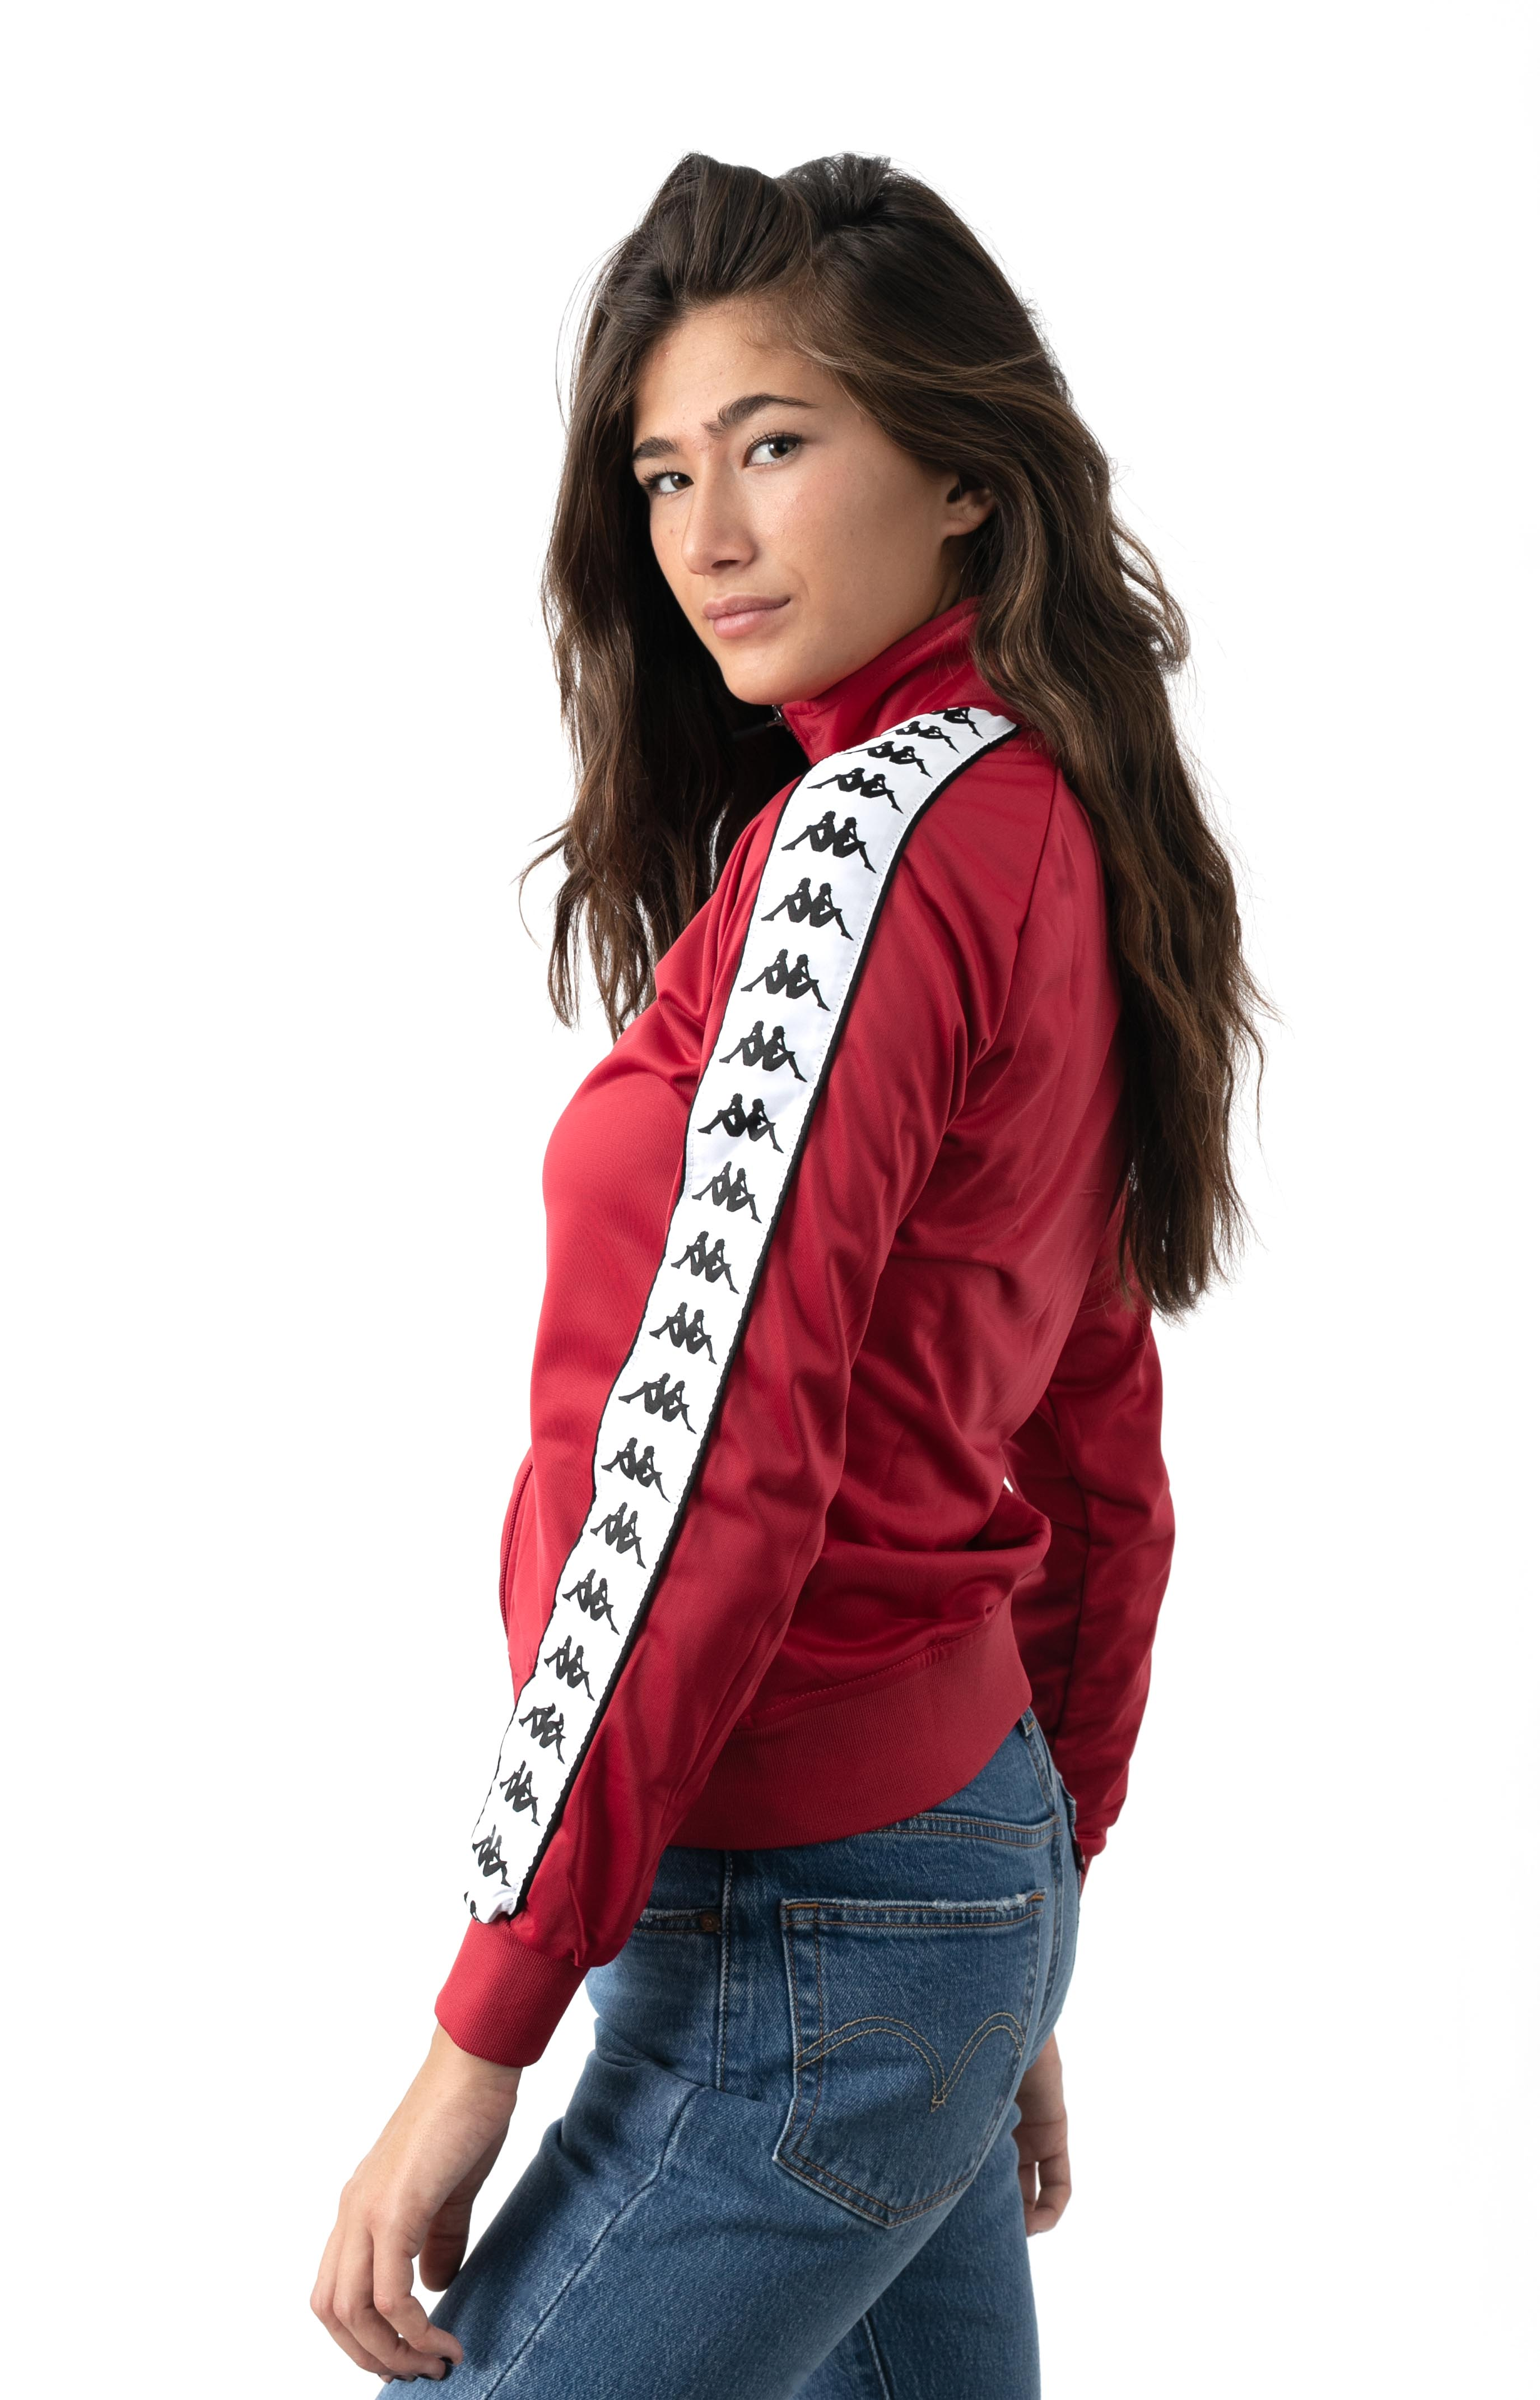 222 Banda Wanniston Slim Track Jacket - Red Cyclamen/White  2